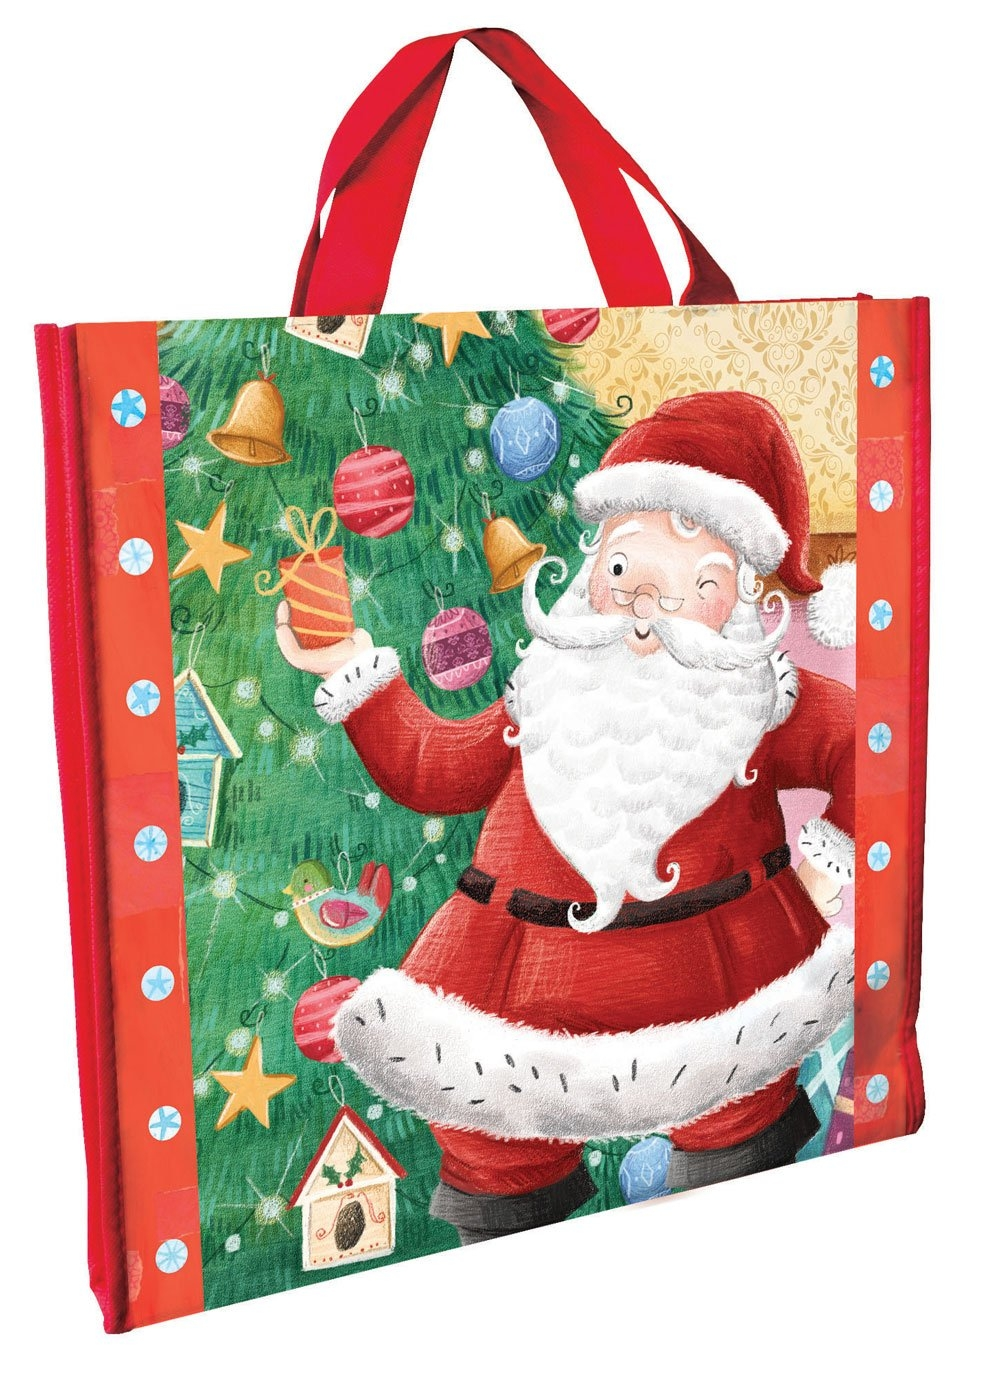 Christmas Time 5-book Collection Bag - 18638284 , 4242166281084 , 62_22987295 , 291000 , Christmas-Time-5-book-Collection-Bag-62_22987295 , tiki.vn , Christmas Time 5-book Collection Bag